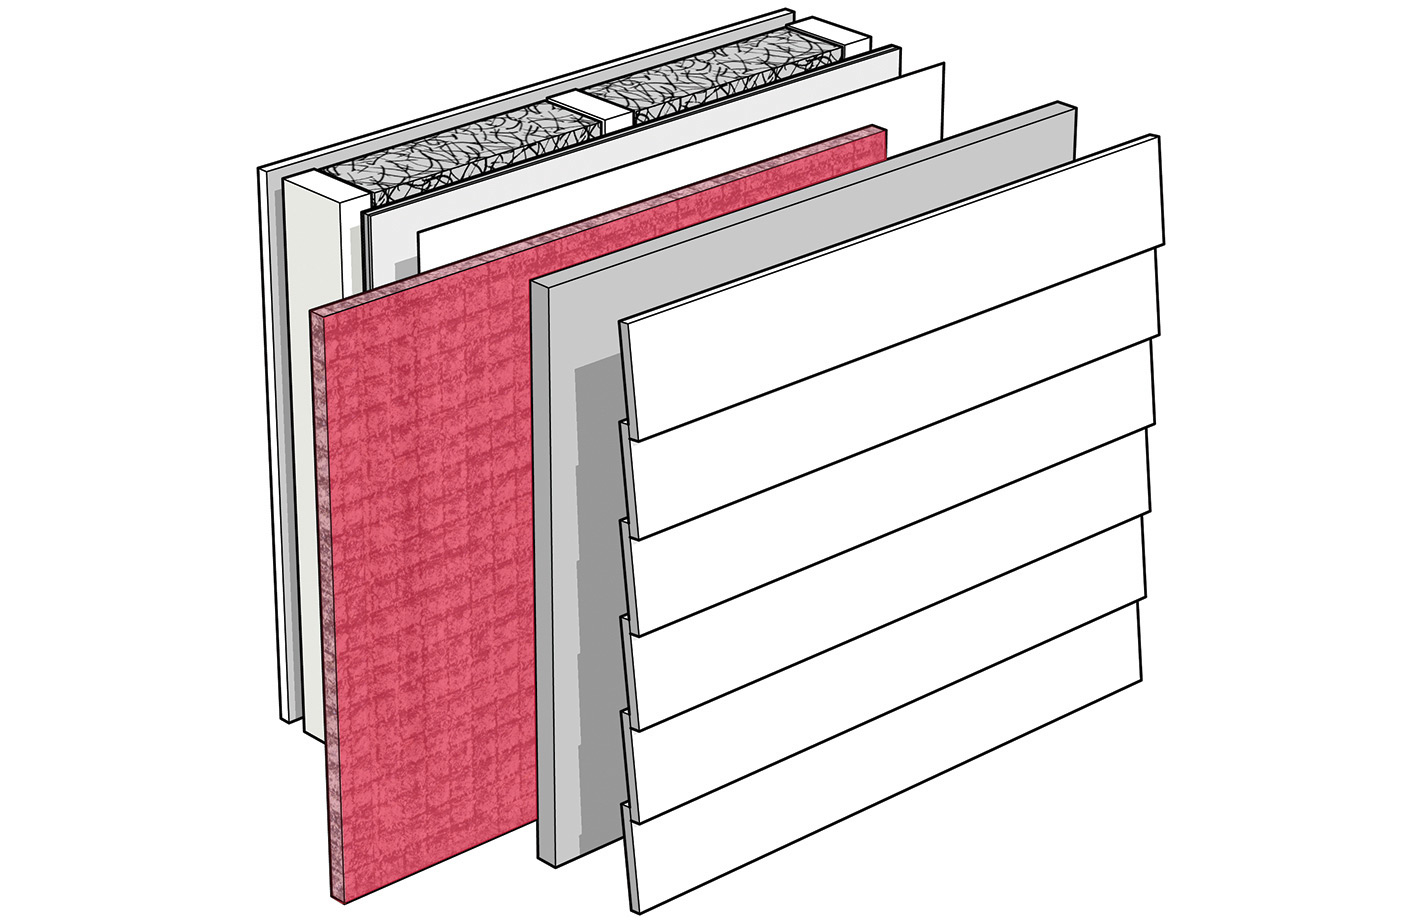 Cement board or wood siding